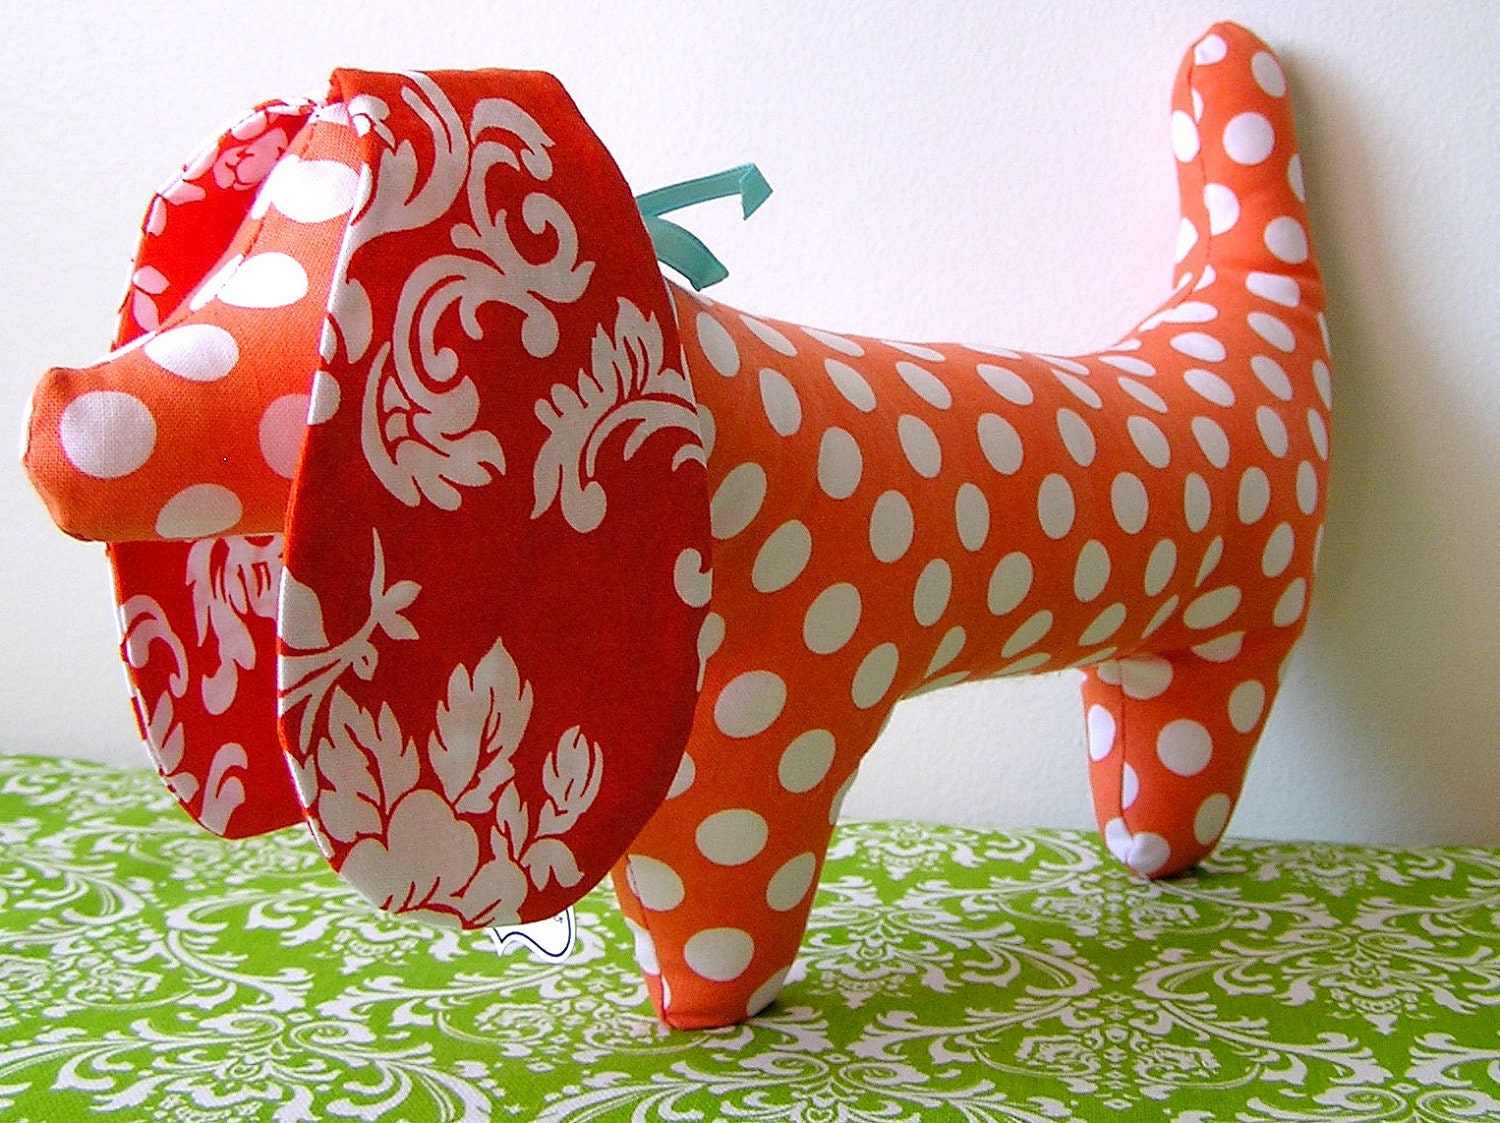 Orange Stuffed Dachshund Toy Dog, polka dots - OurPicketFence